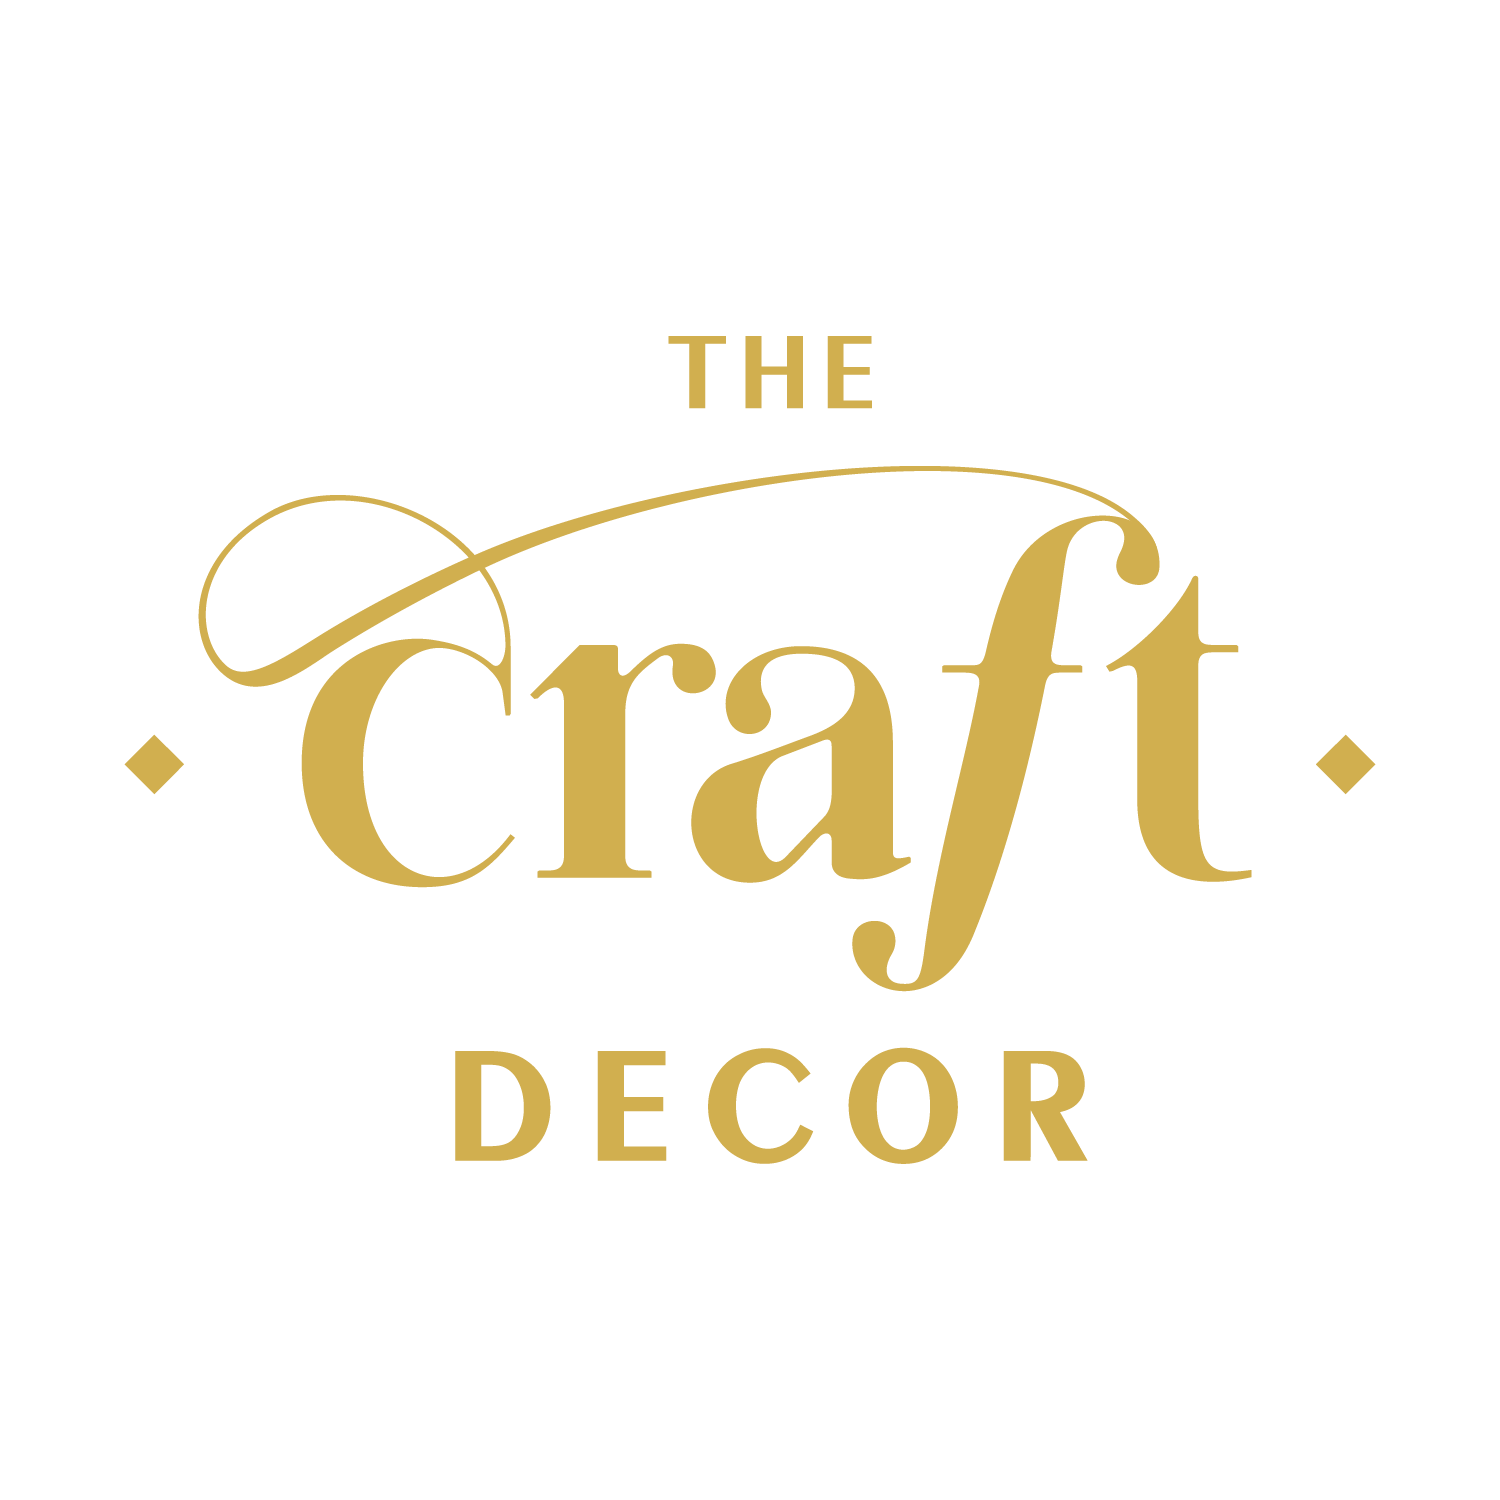 THE CRAFT DECOR